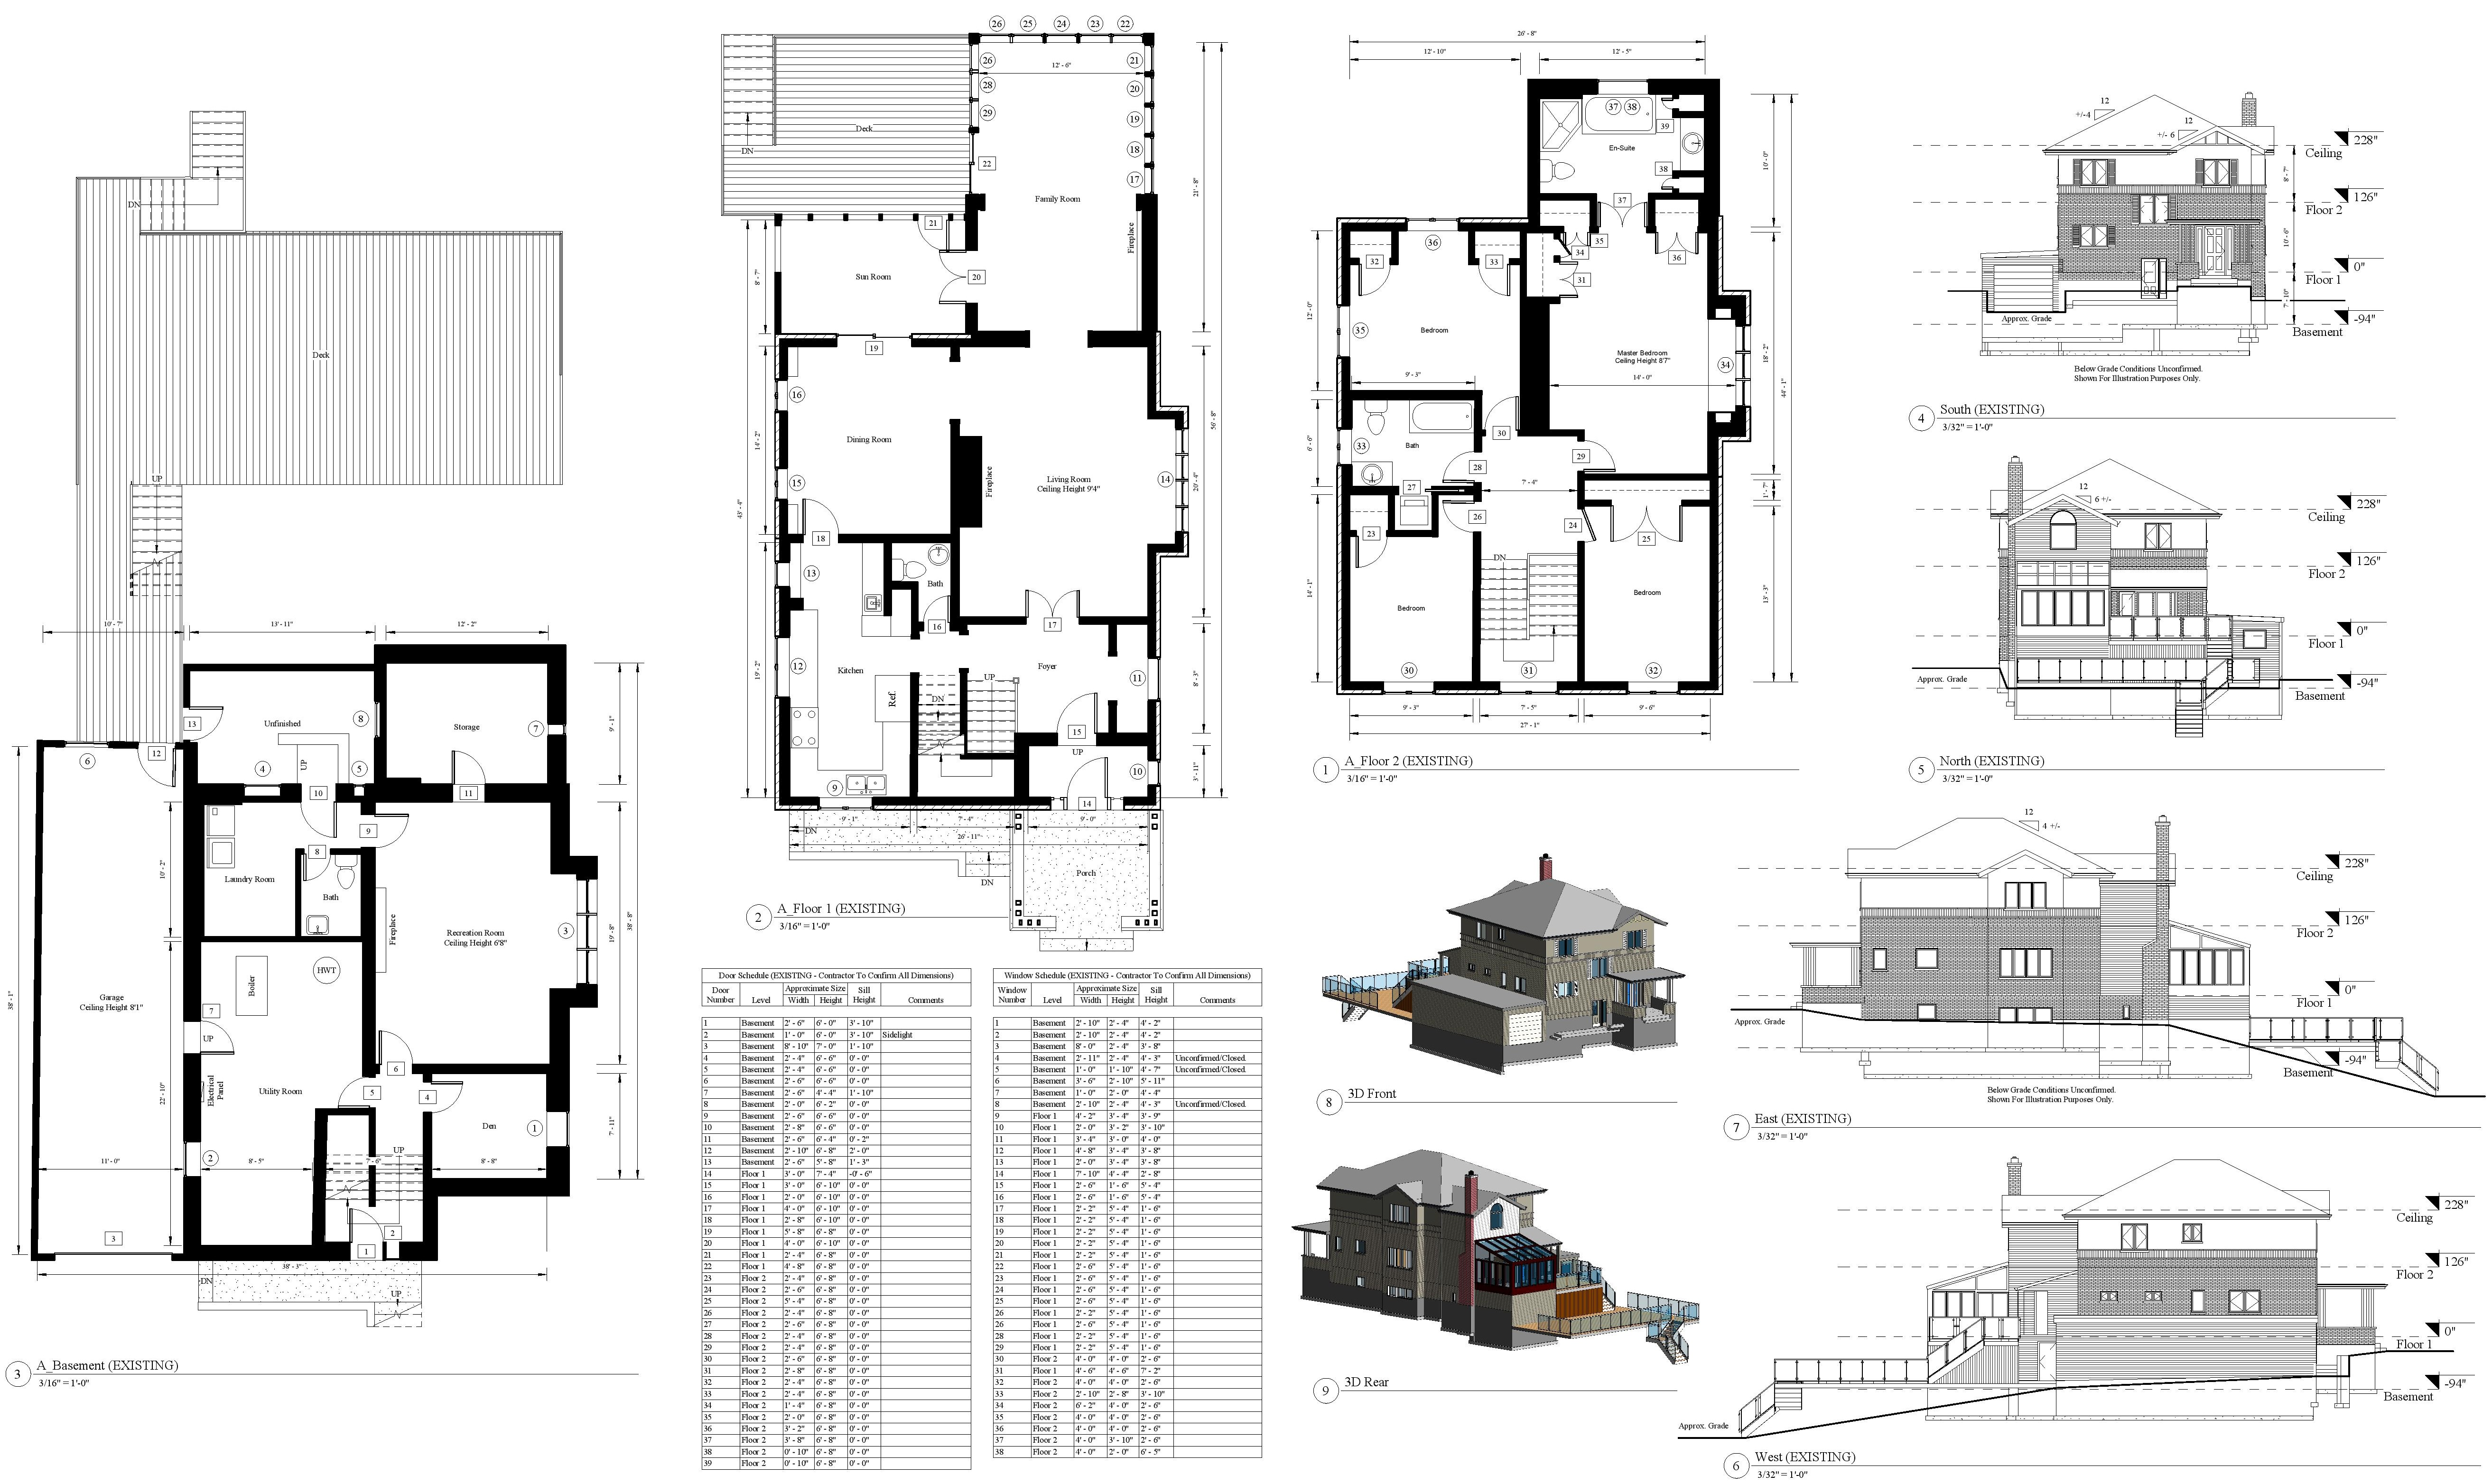 AutoCad drawing plan that consists of the existing floor plans, 2D elevations and supporting data to a two level residential house with a basement.